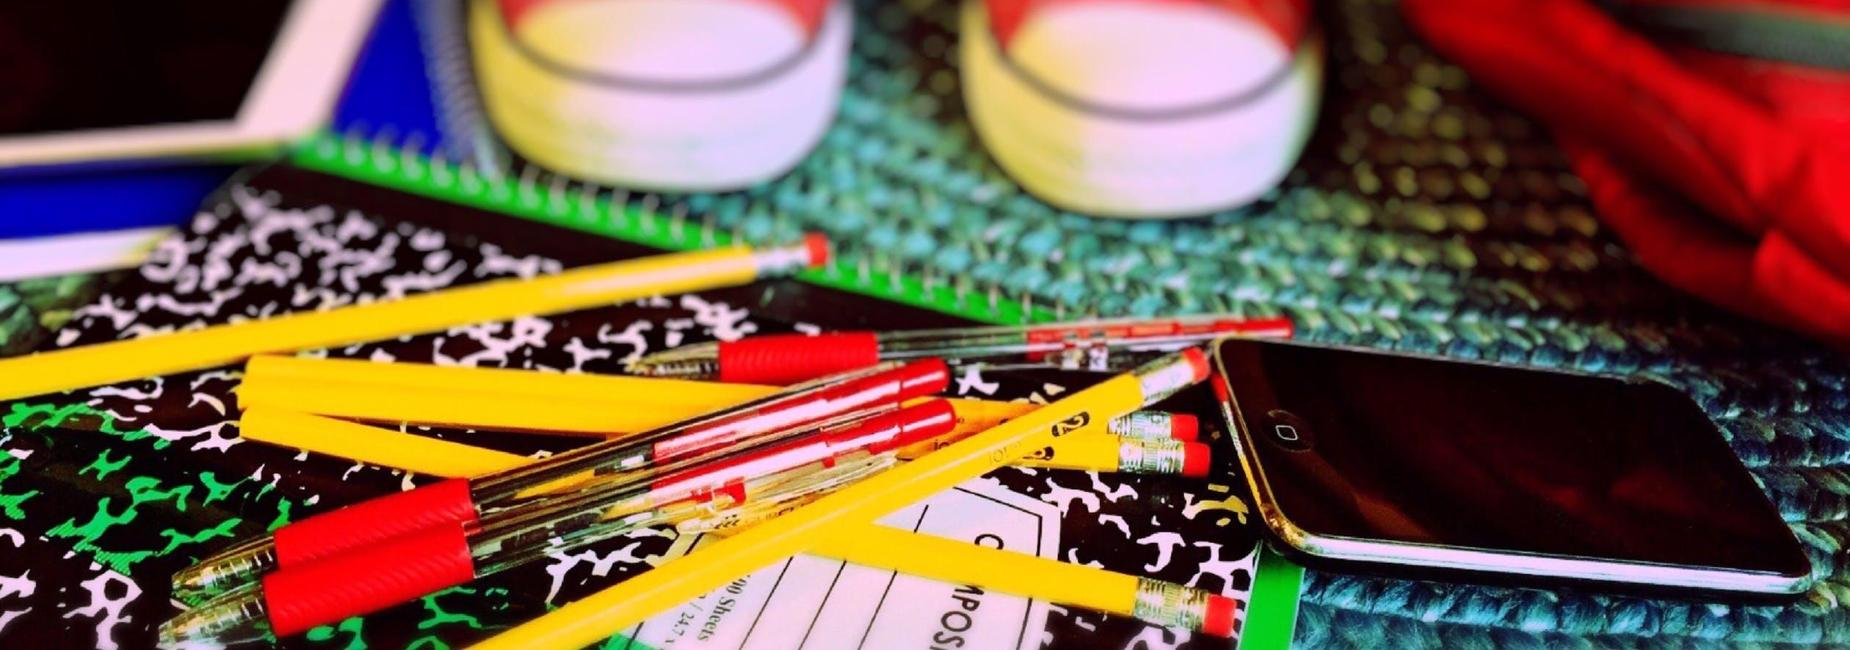 Pencils and pads on floor